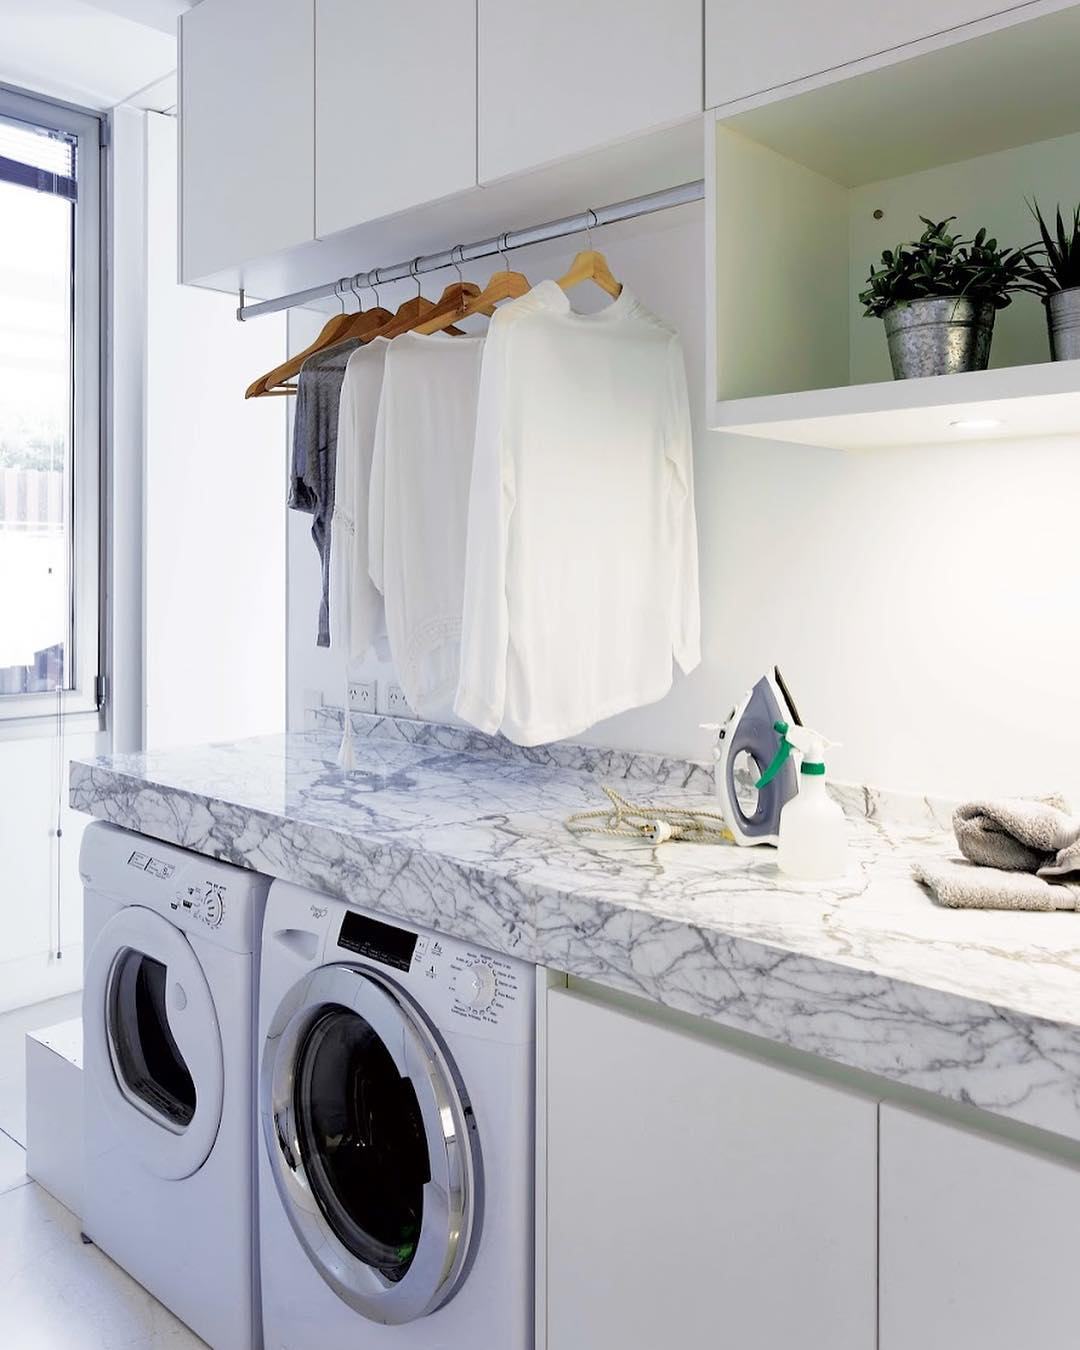 The Laundry Room Design & Planning Guide